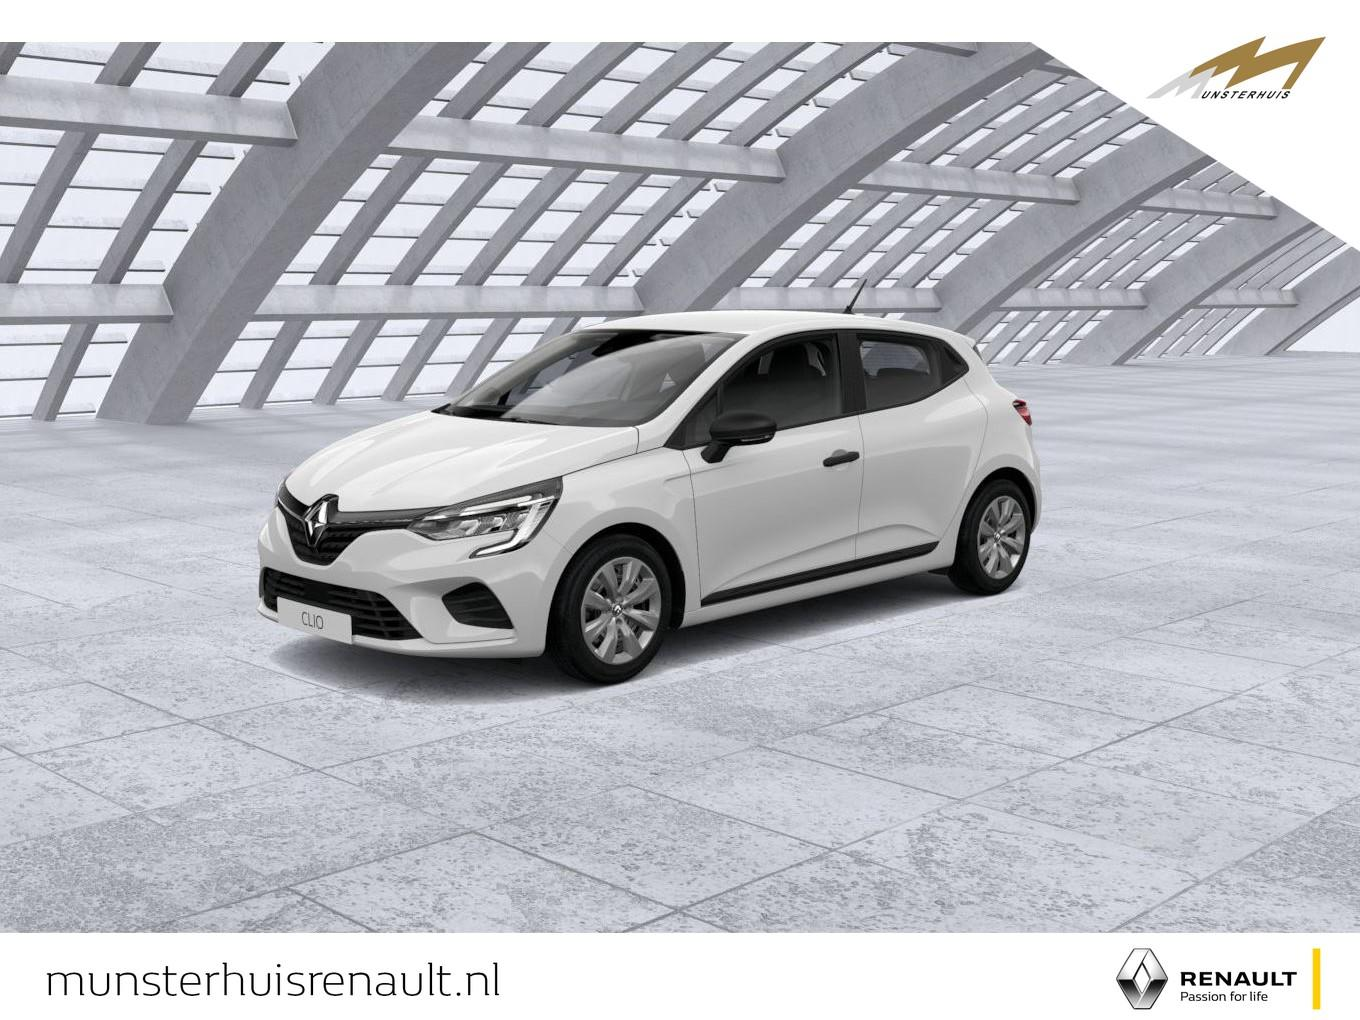 Renault Clio Tce 100 life - met private lease voor €269,-* !!